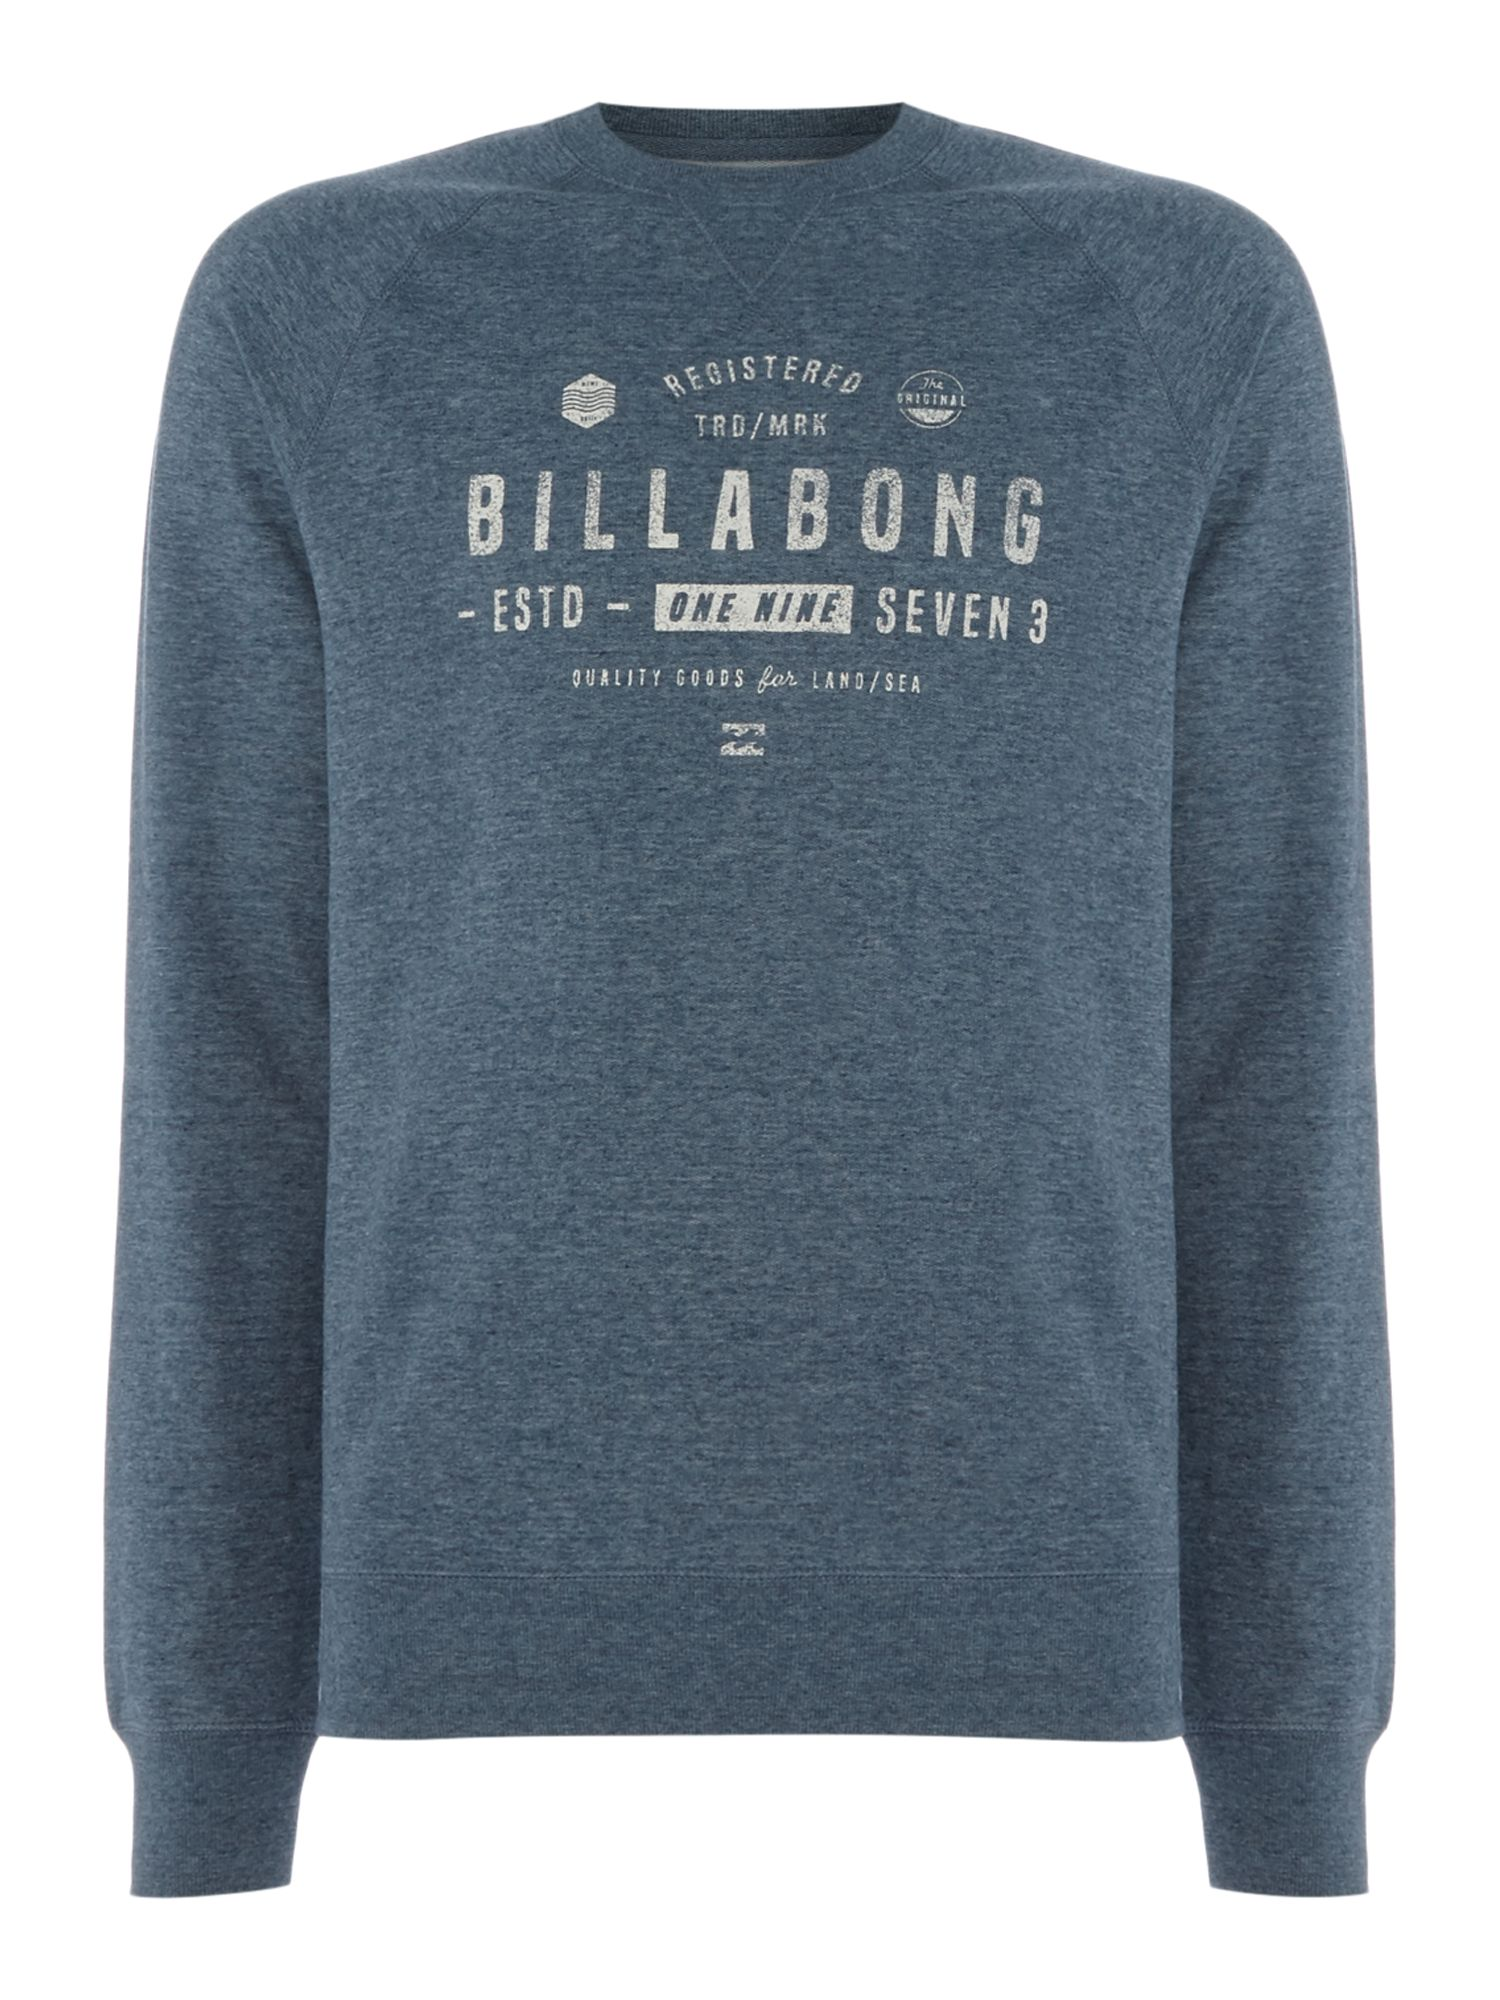 Men's Billabong Brushed Fleece Crewneck Fleece, Mid Blue